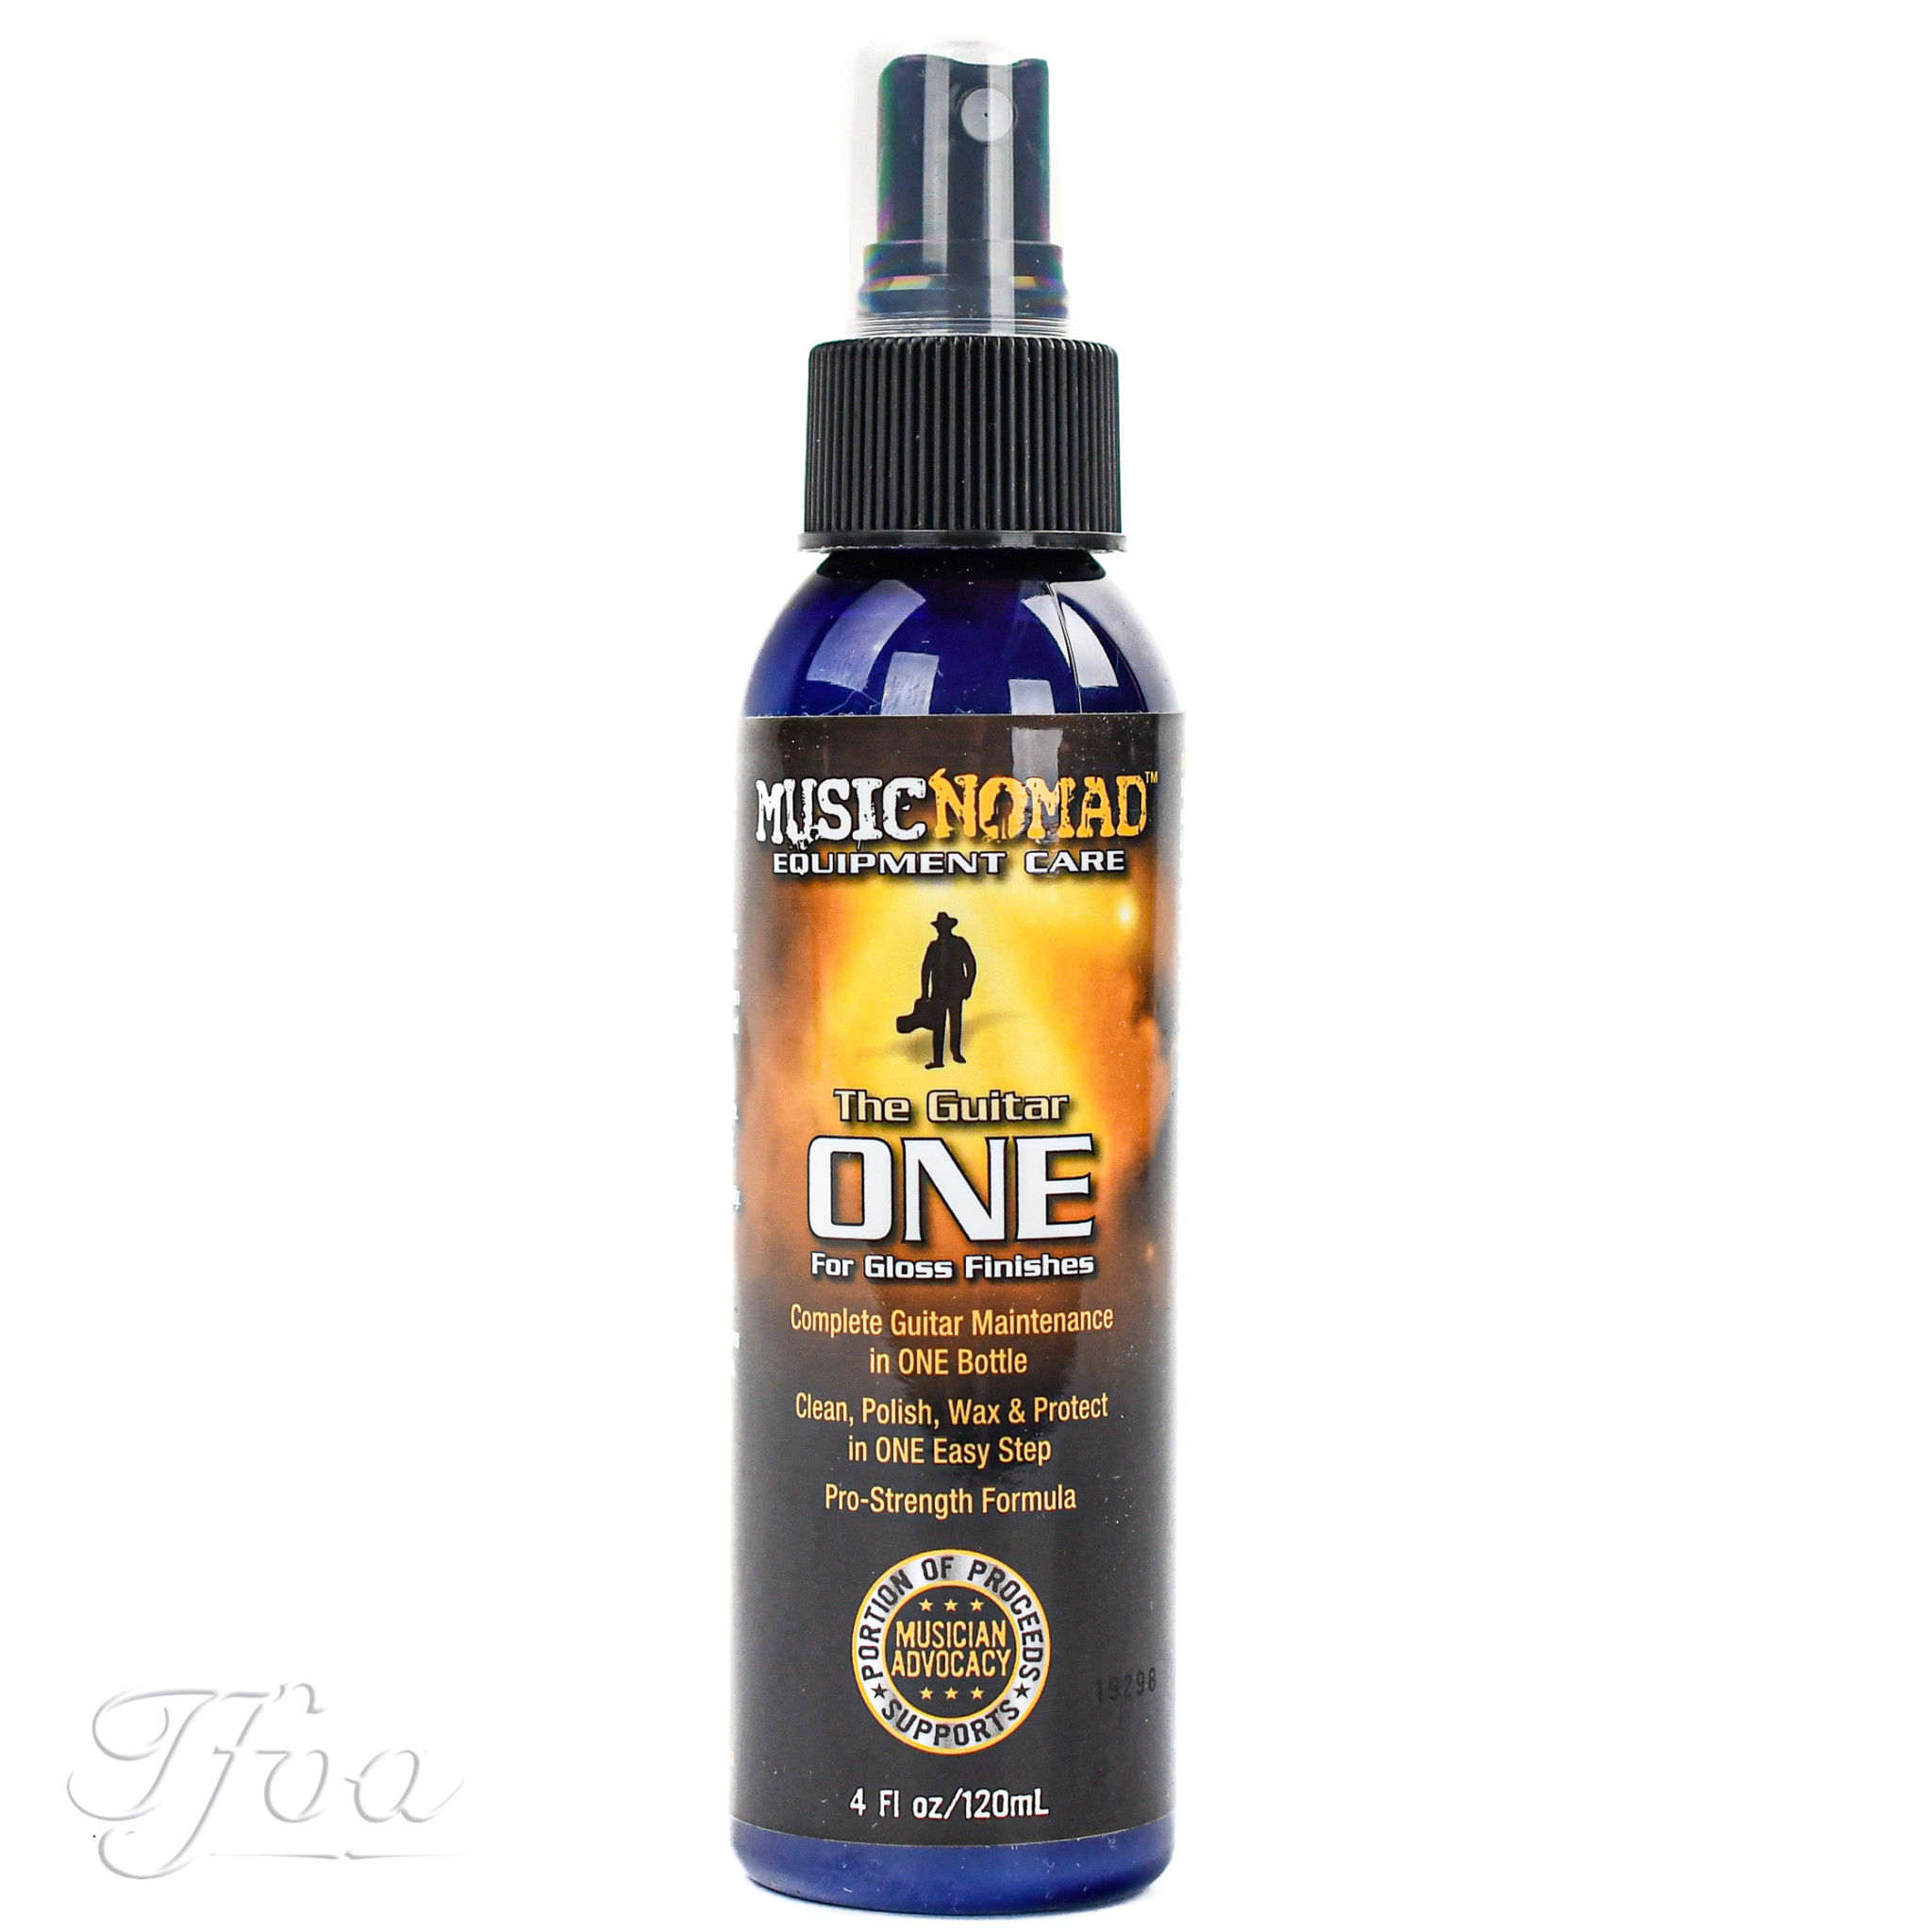 Music Nomad The Guitar ONE 120ml